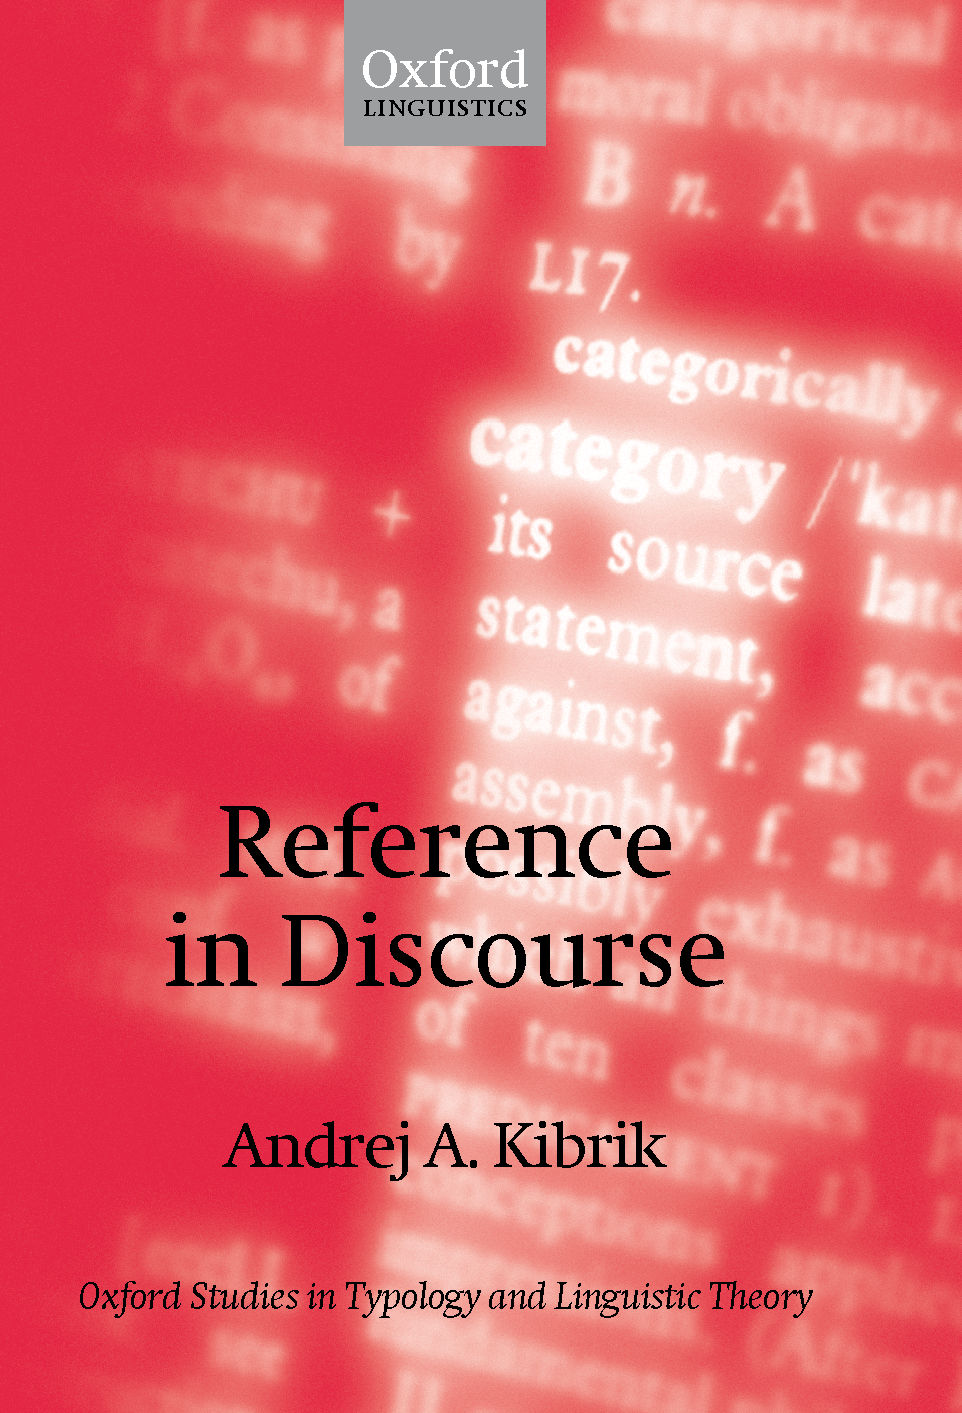 Kibrik, Andrej A. 2011. Reference in discourse Oxford: Oxford University Press